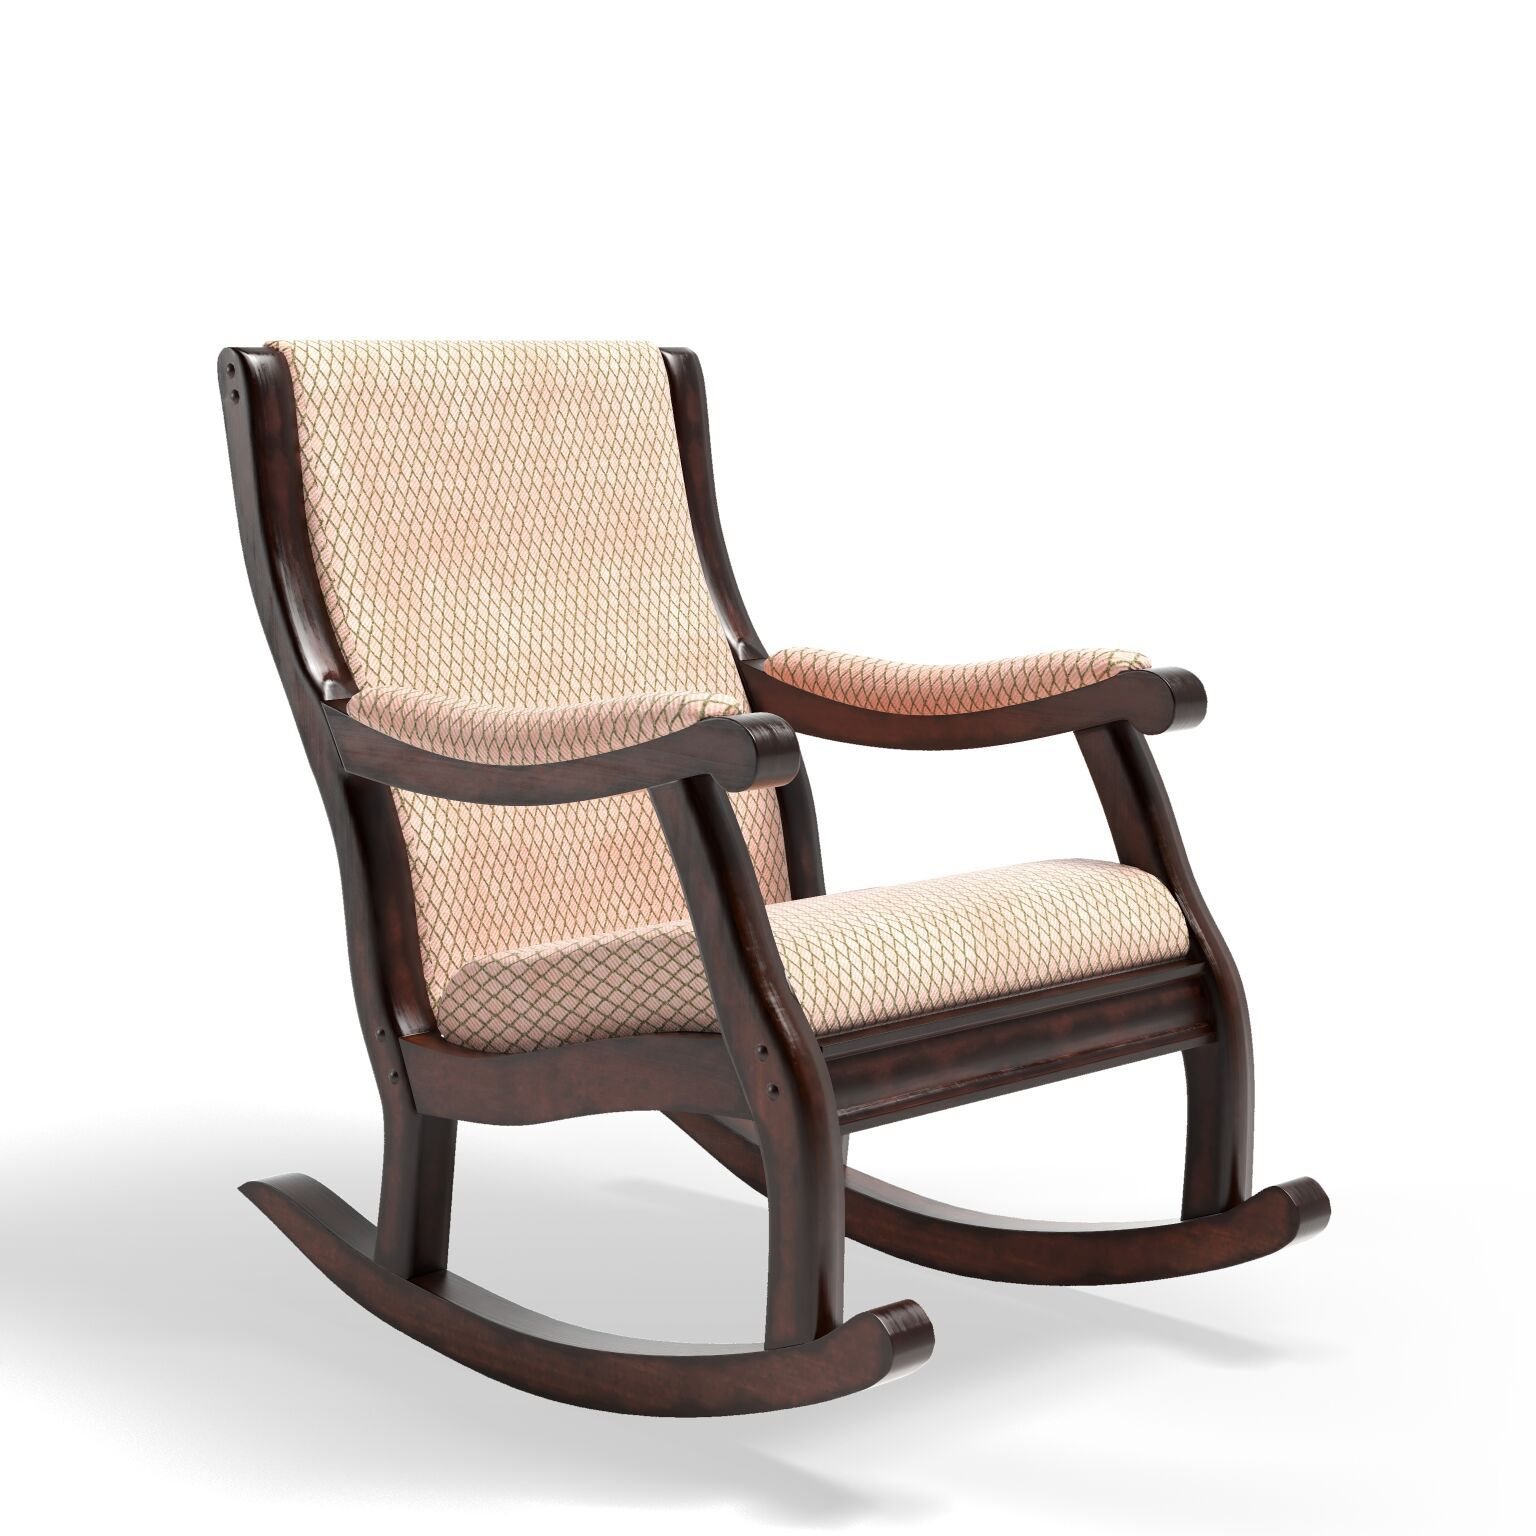 Pattison Fabric Upholstered Rocking Chair Antique Oak Furniture Enitial Lab